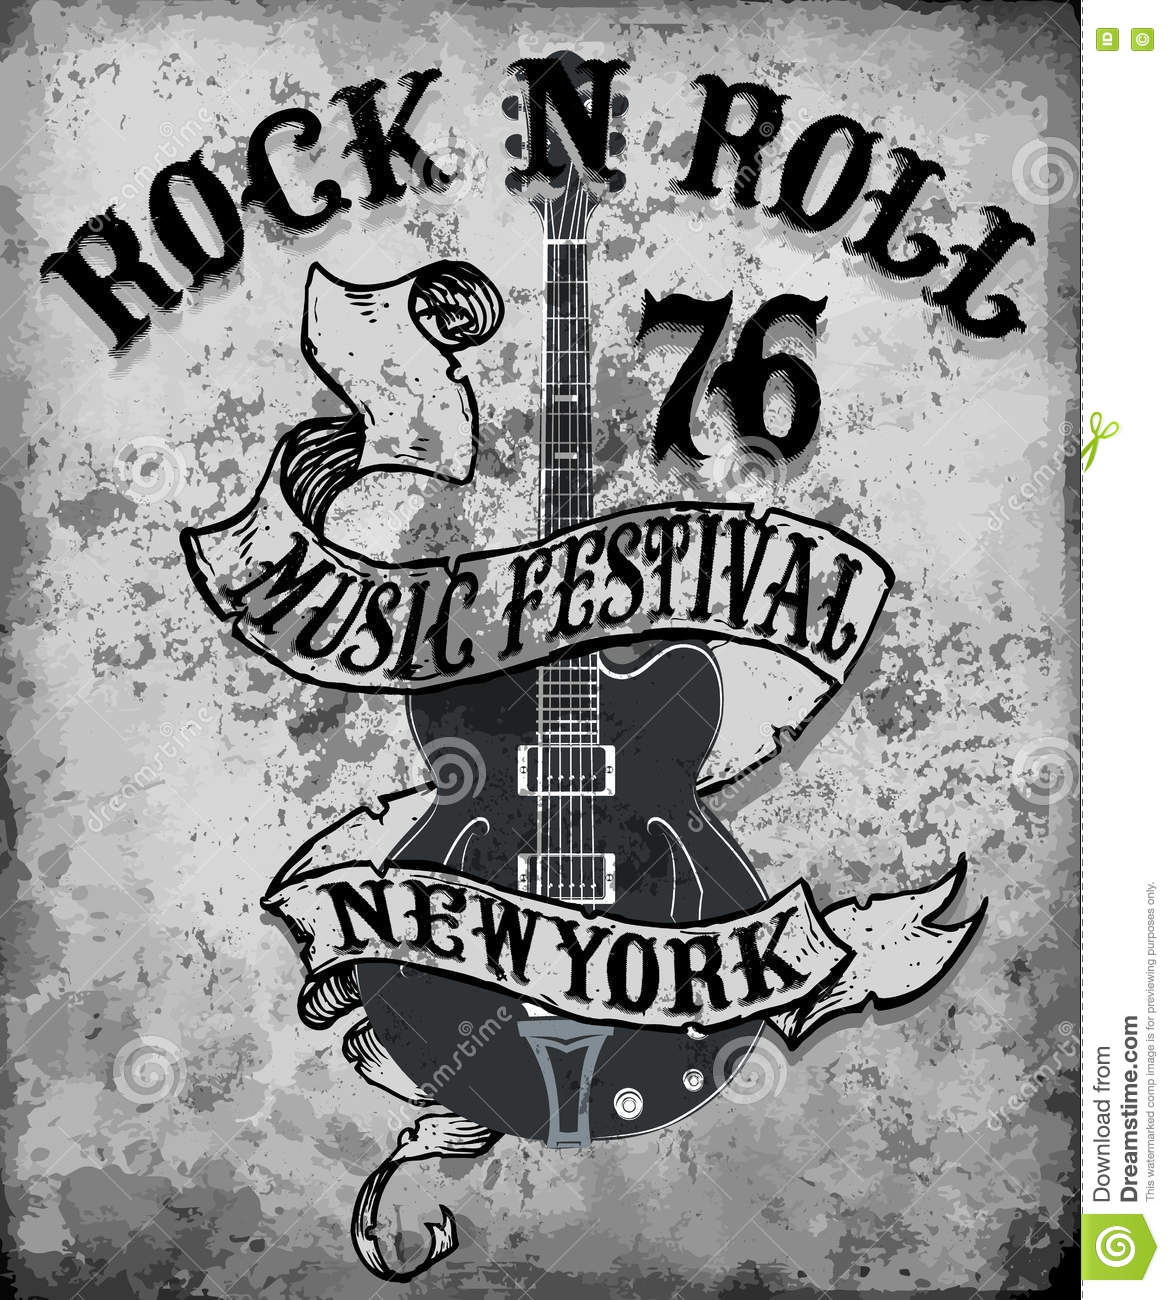 Gallery of rock n roll poster design